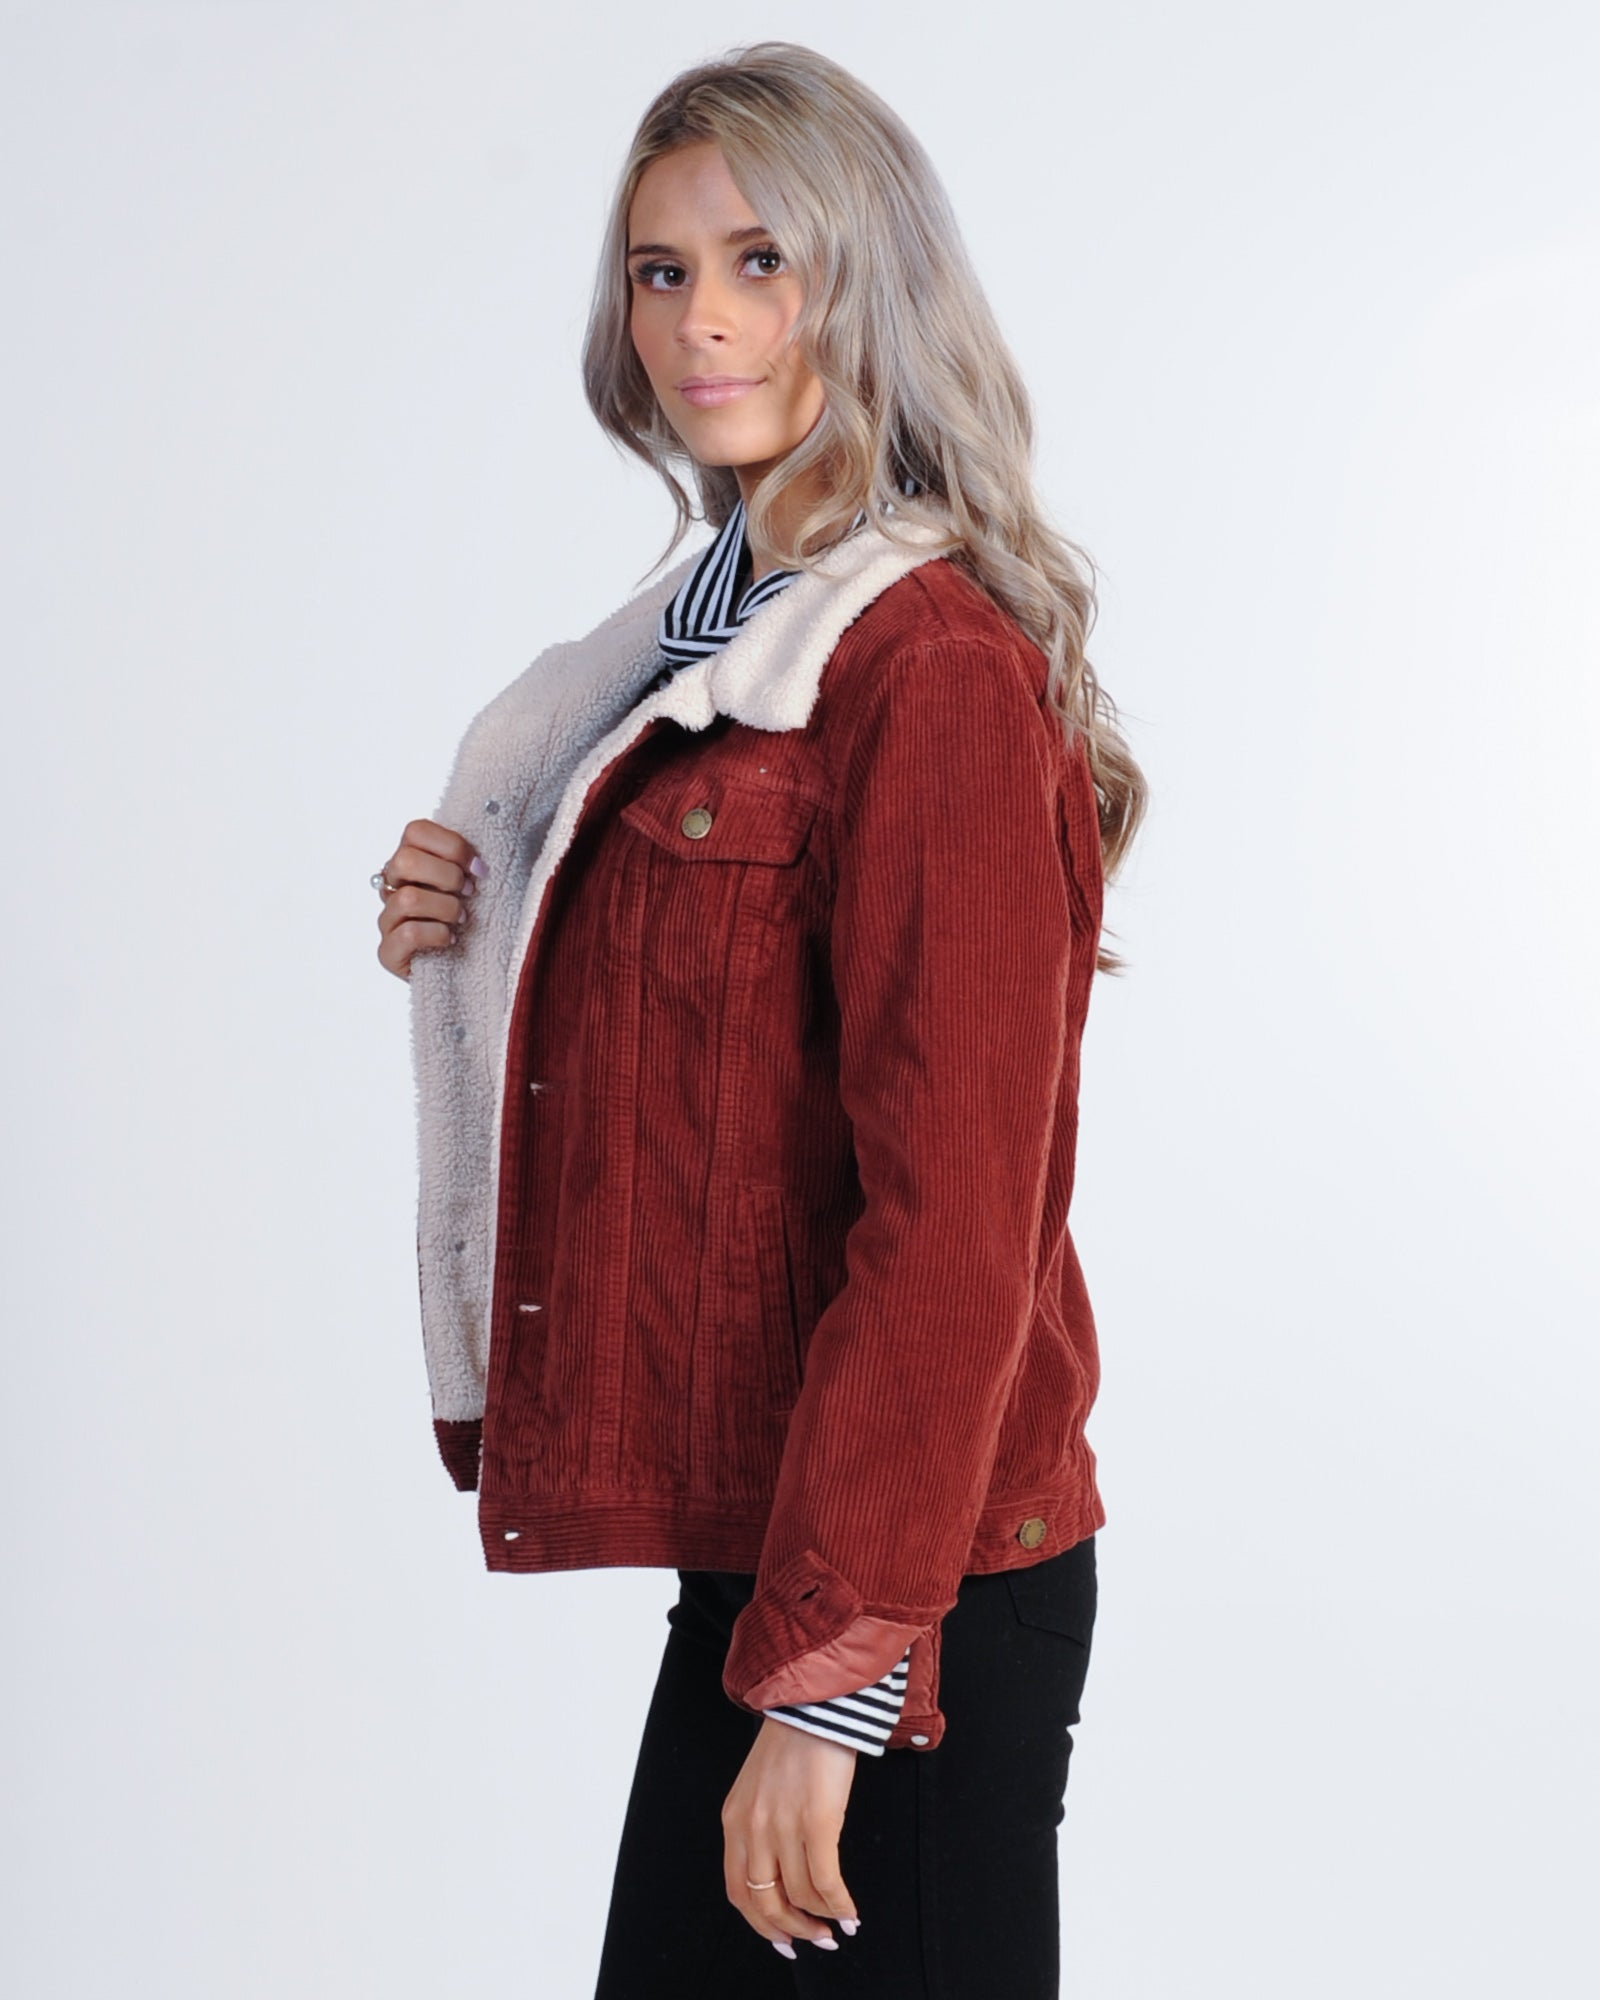 3e25f1945ef9 Thrills Bianca Cord Jacket - Blood Red – New Generation Clothing